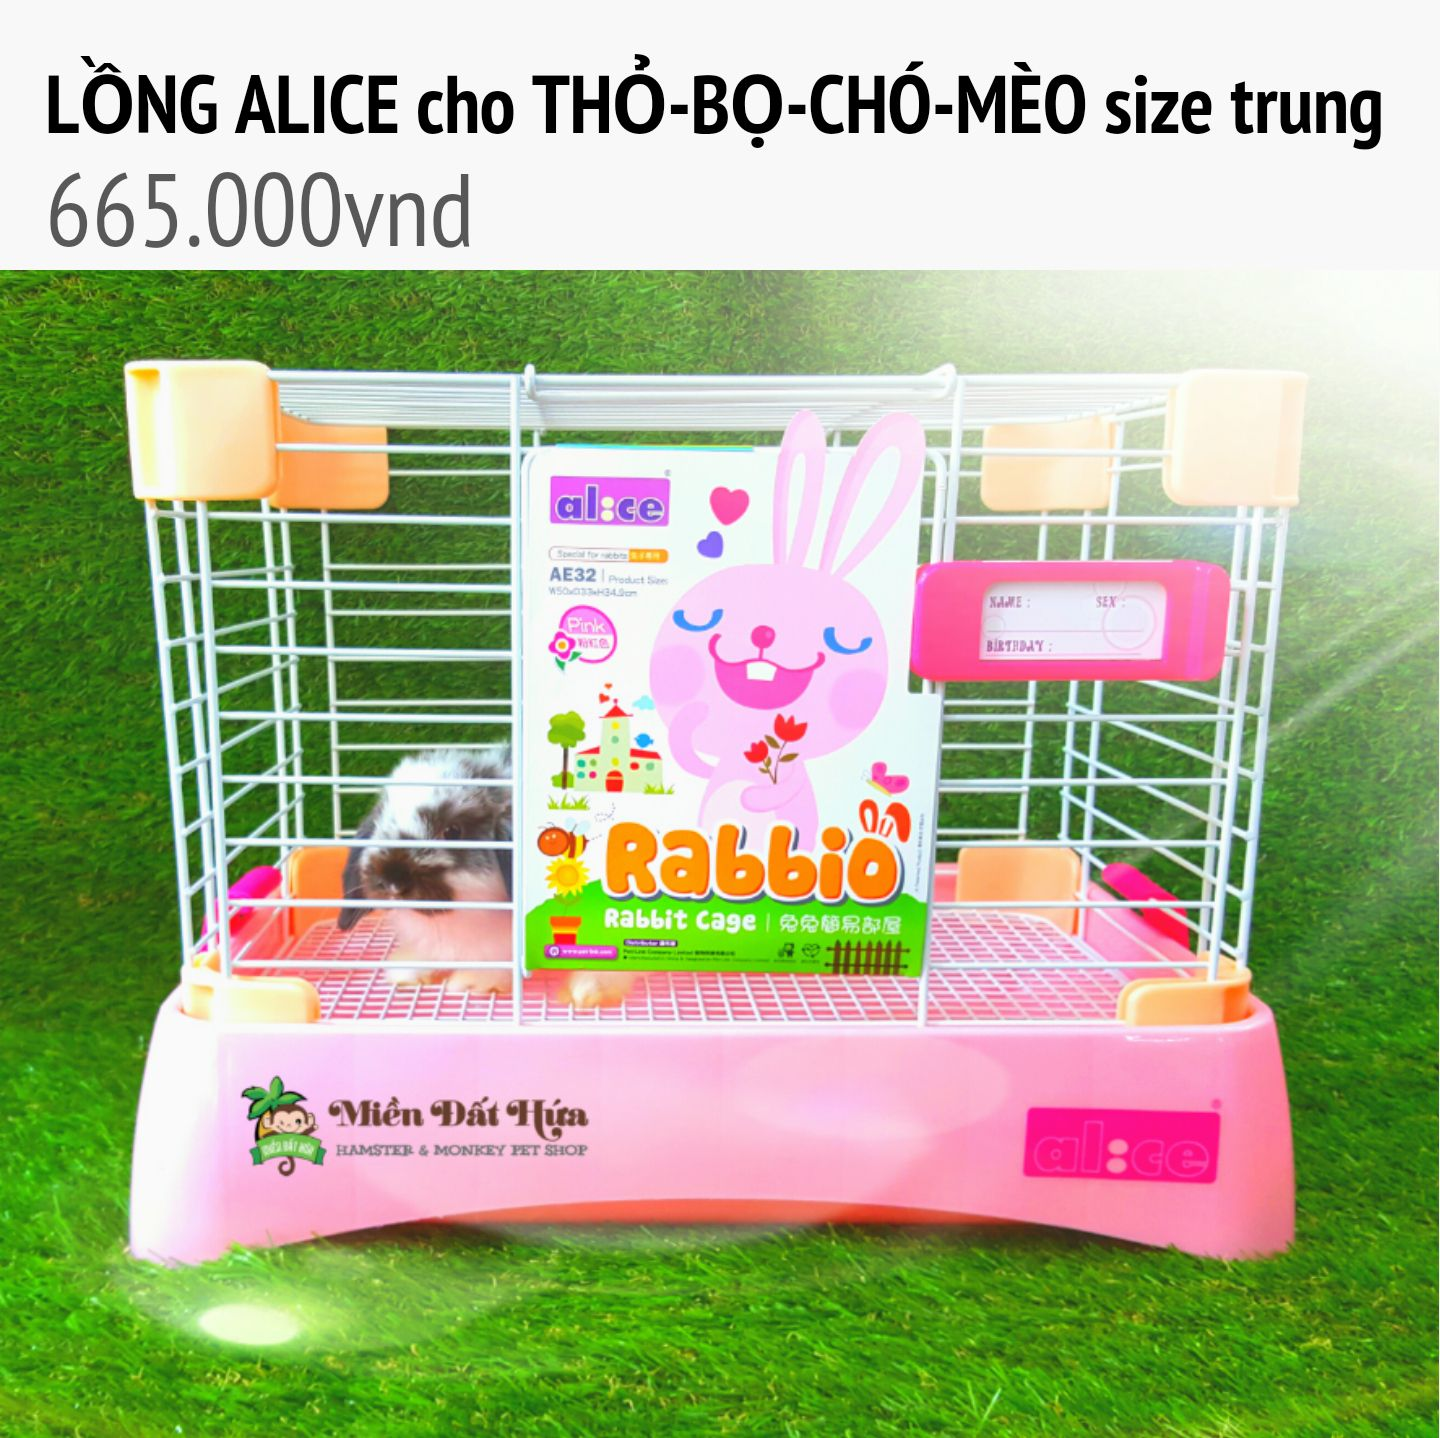 lồng alice cho thỏ  size trung